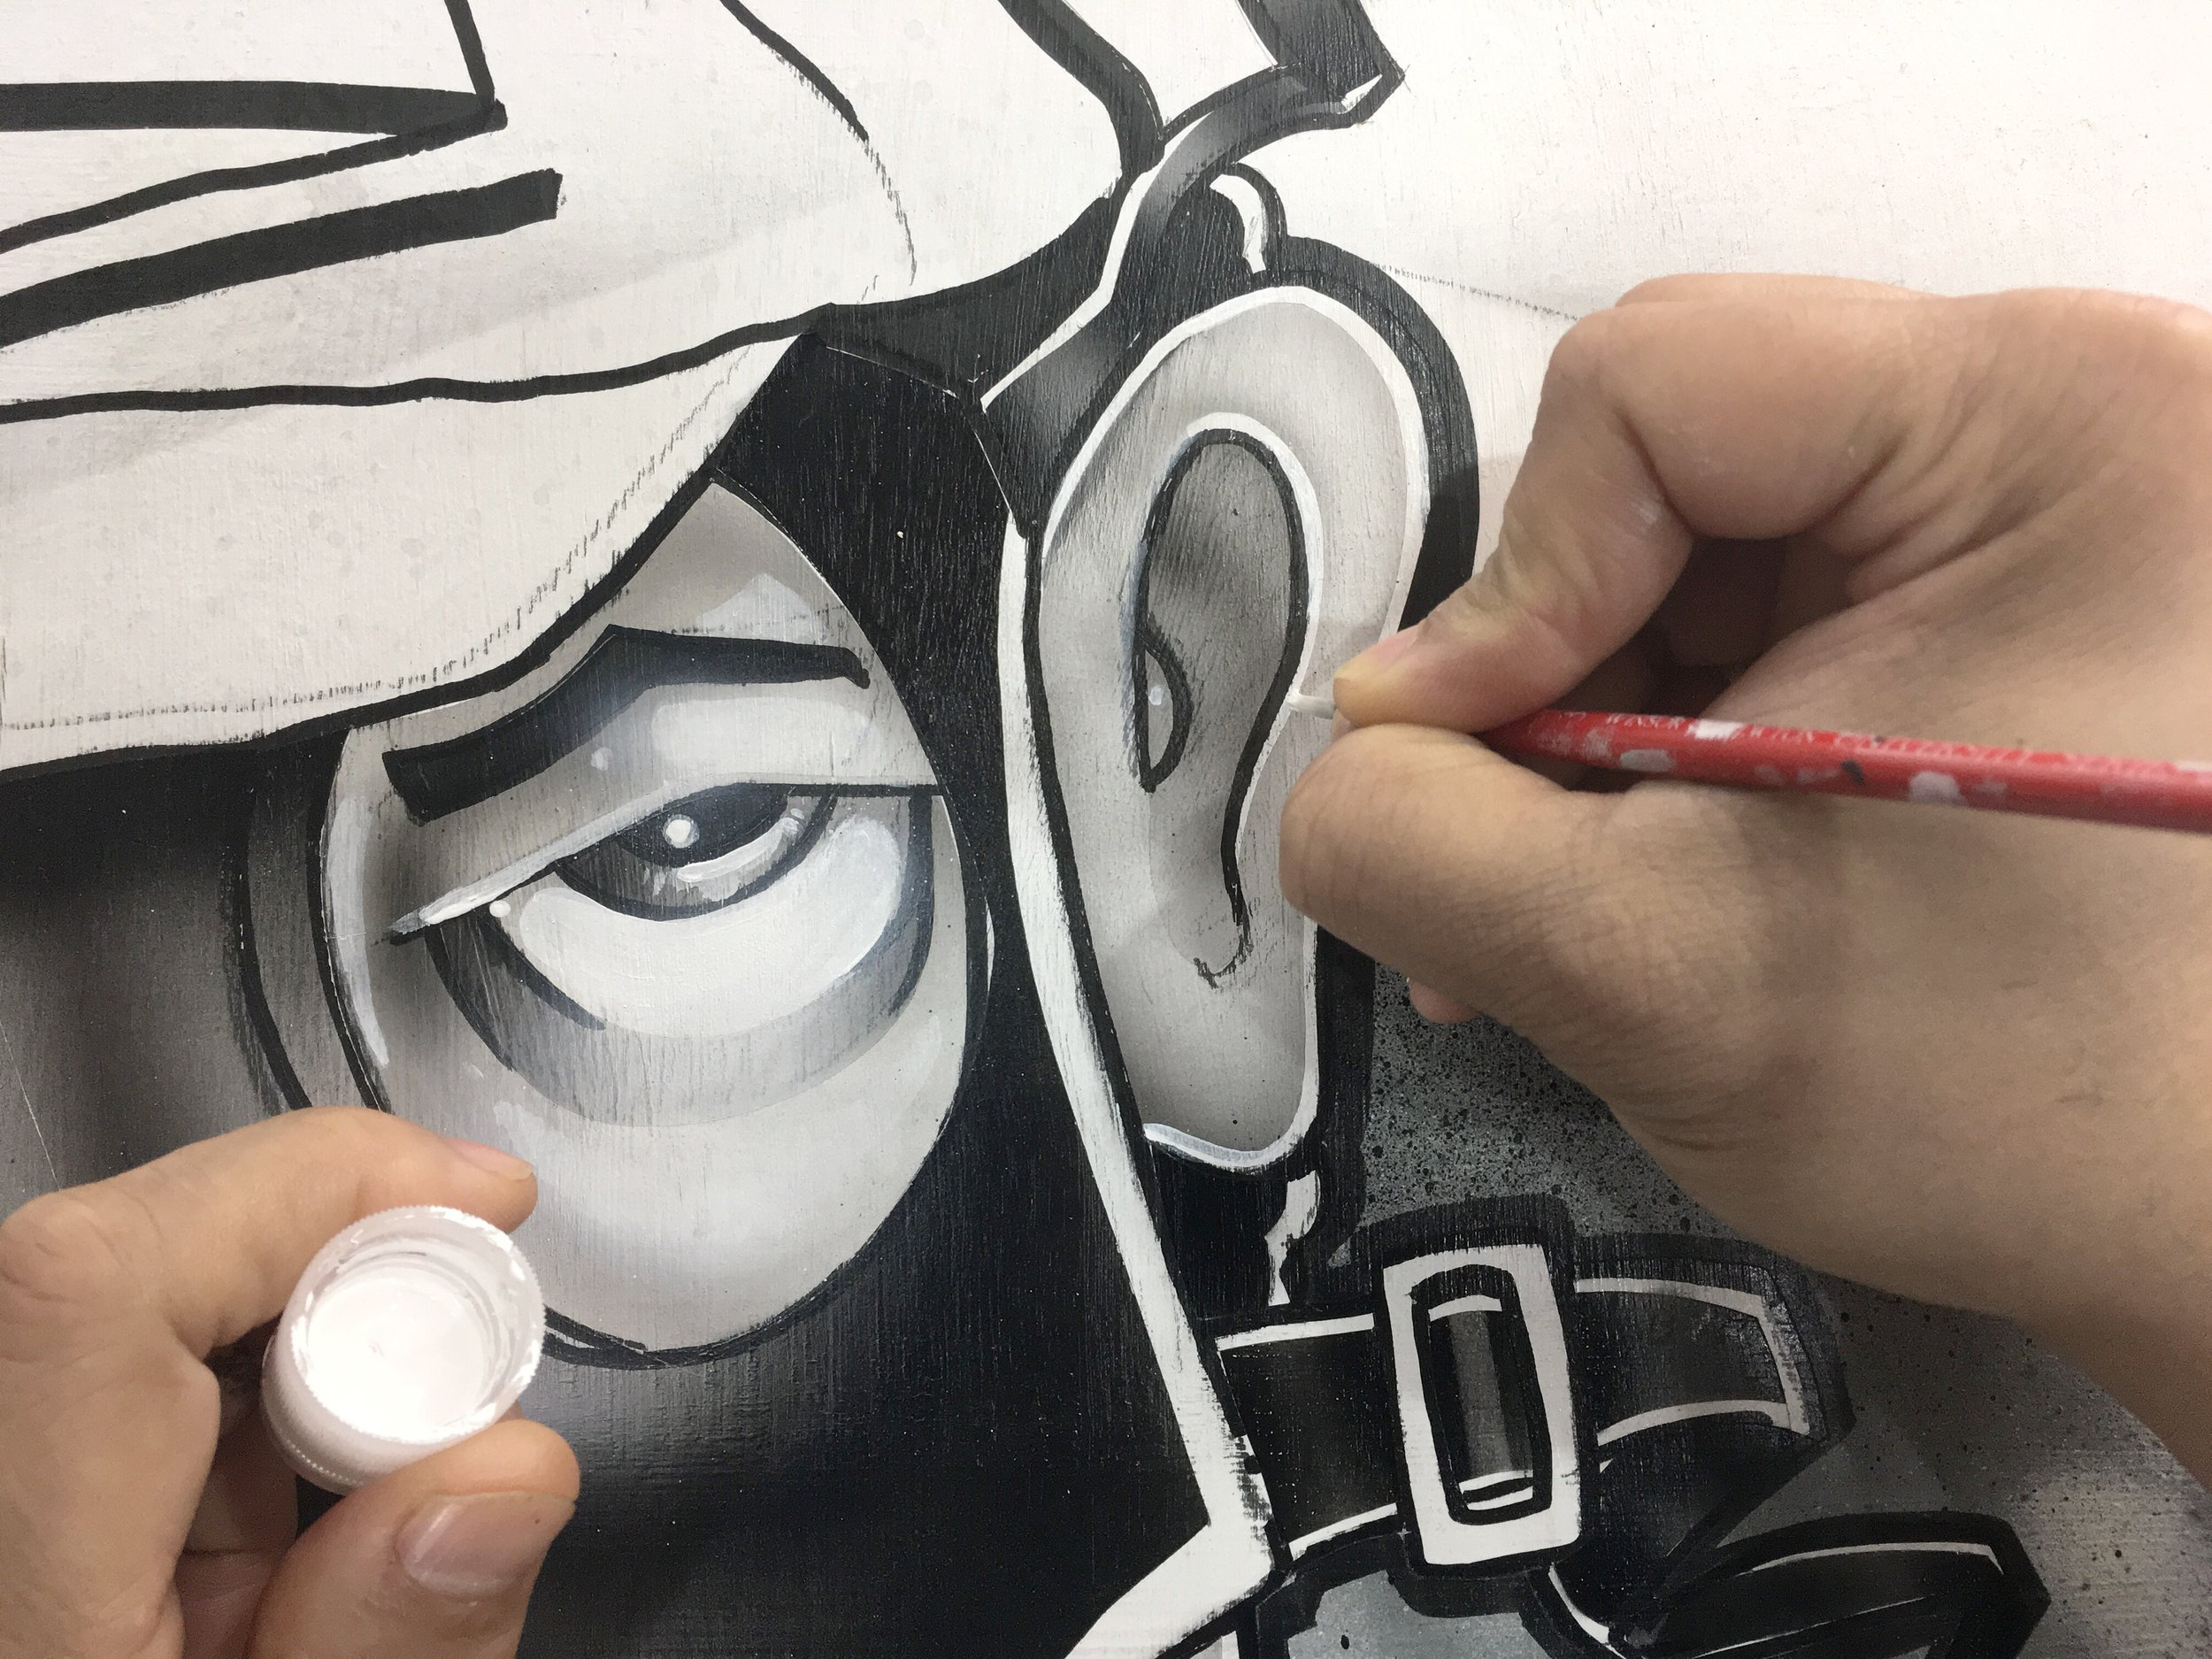 The broad strokes are easy and immediately gratifying but once they are in place the details are left, the details are quite a bit trickier.